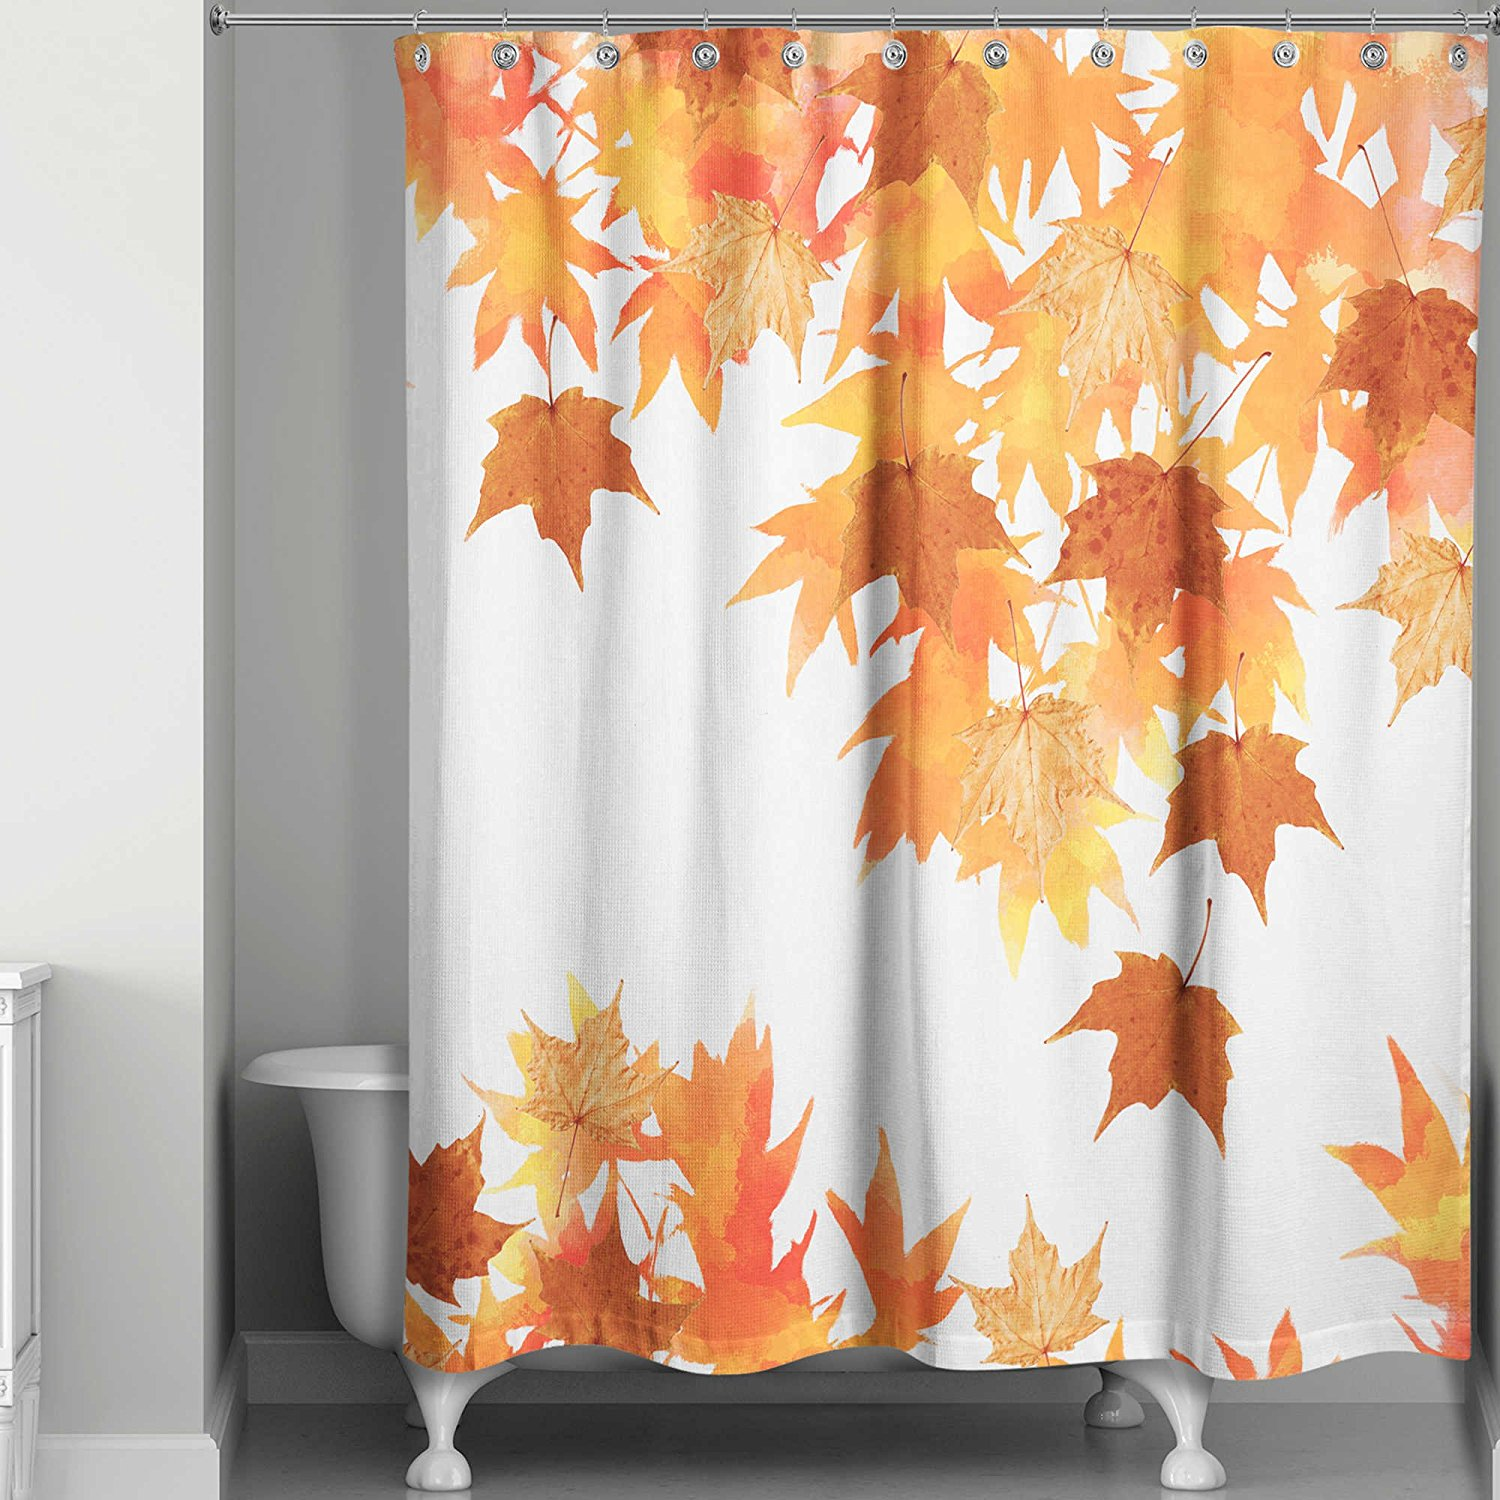 Charmant Get Quotations · Shower Curtain, Machine Wash And Dry In Autumn Leaves  Collage Design